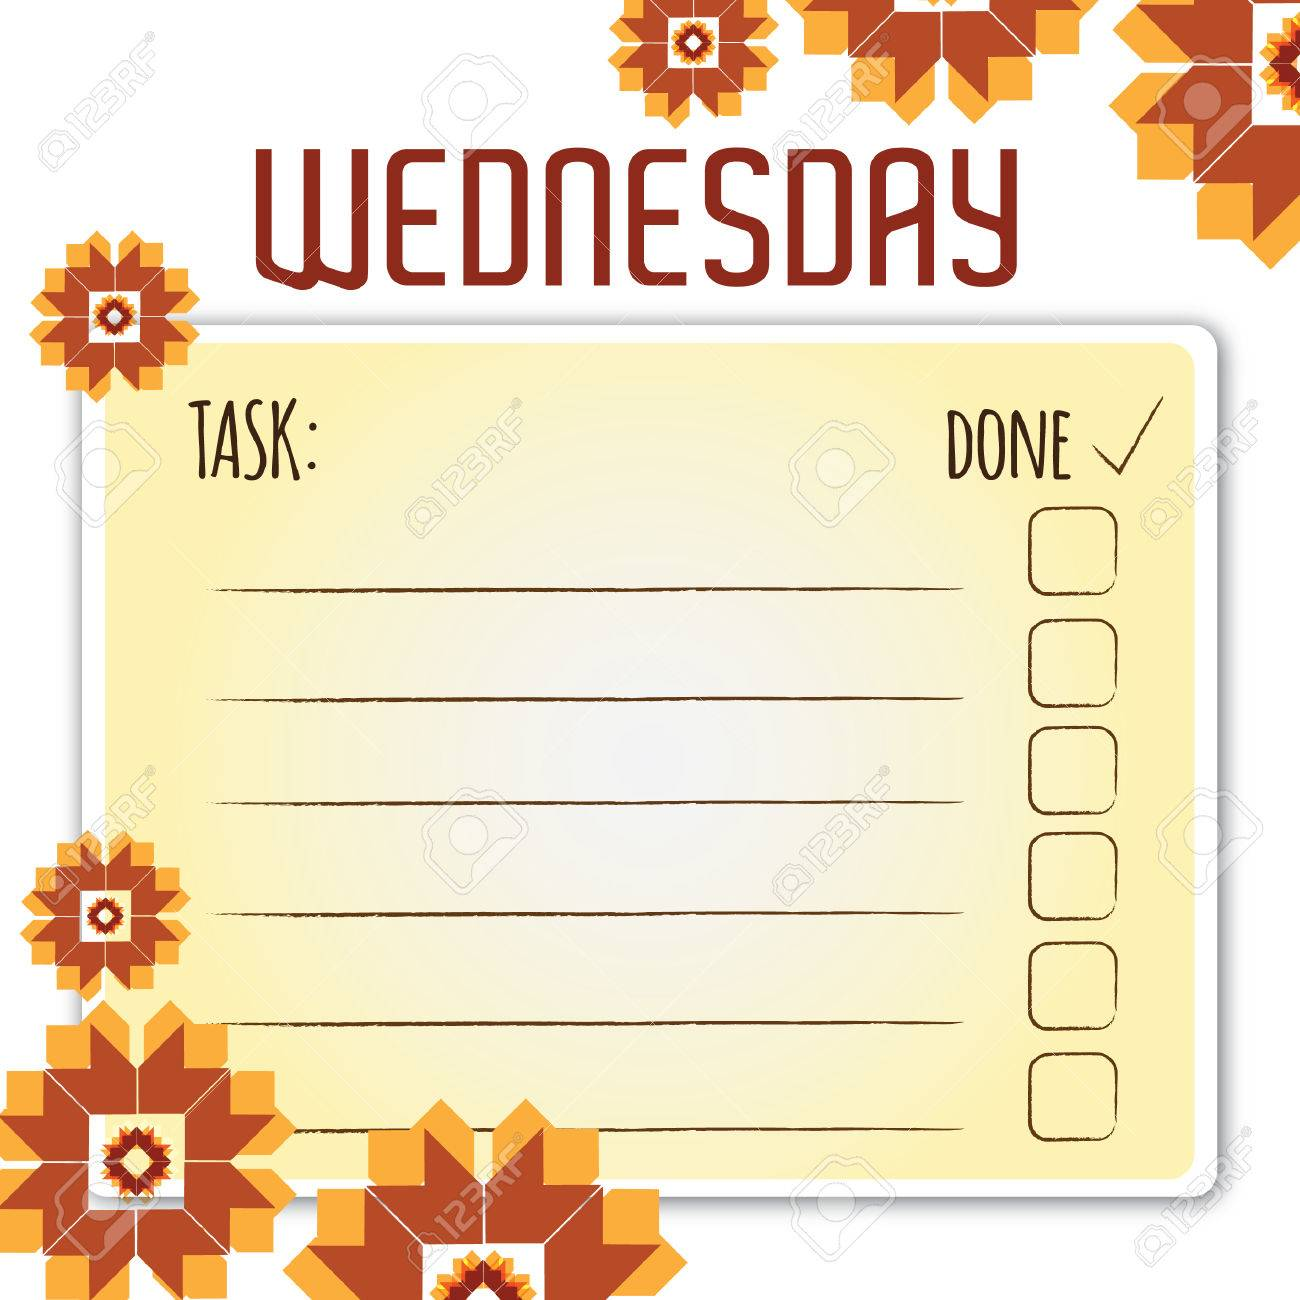 blank daily checklist template royalty free cliparts, vectors, and